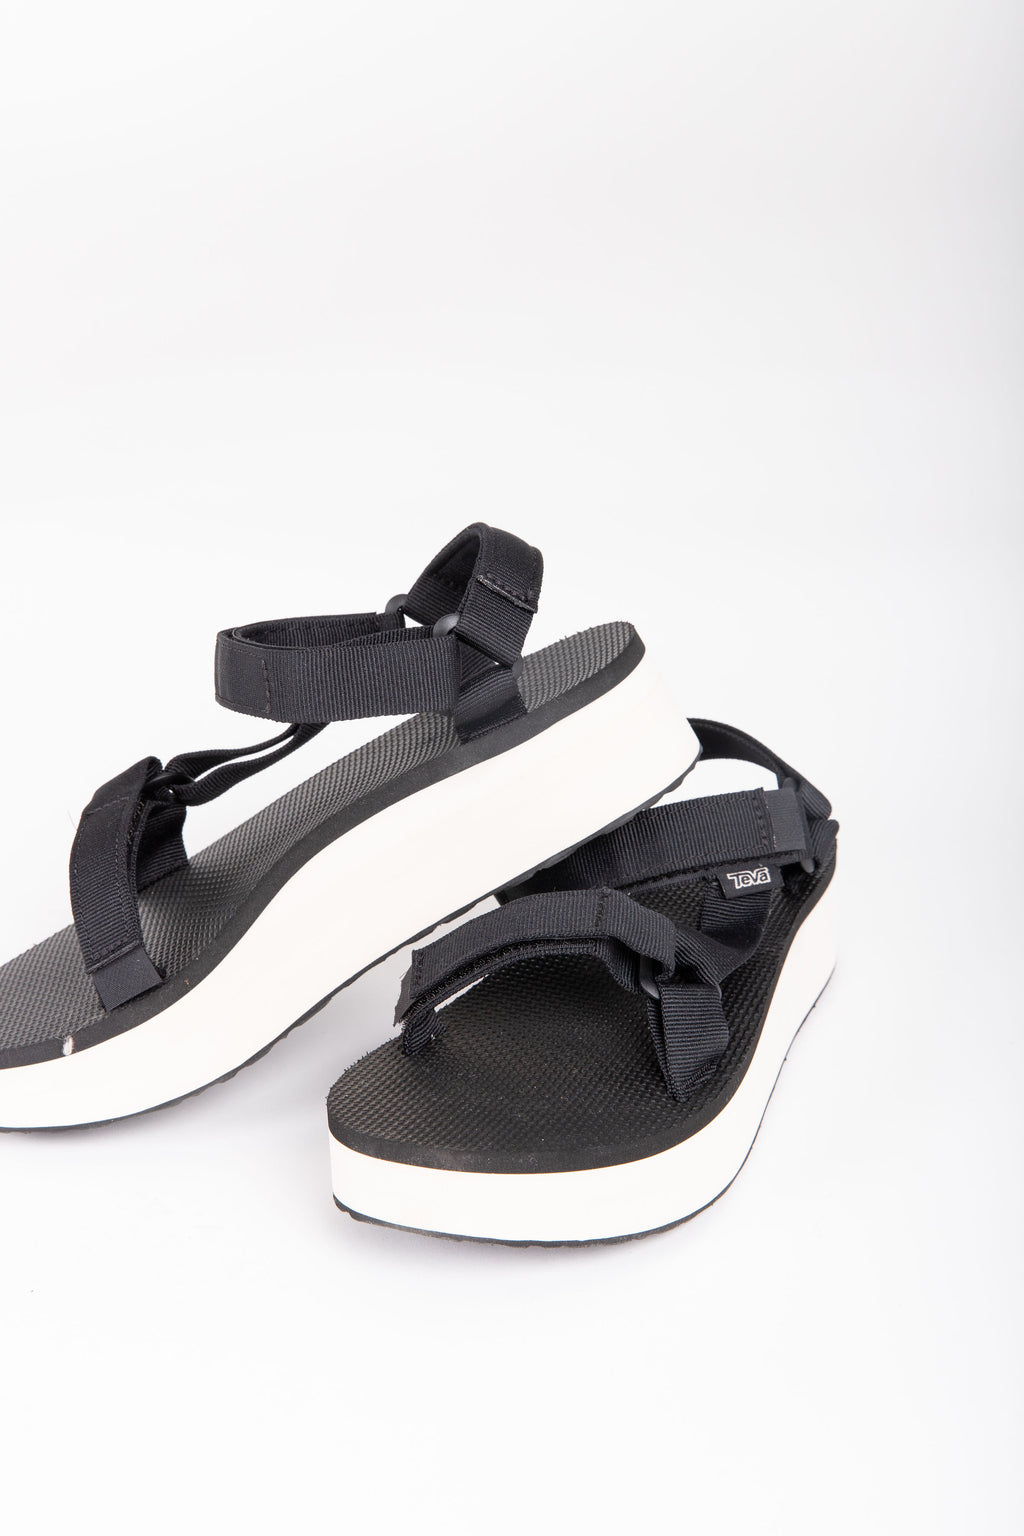 Teva: Flatform Universal in Black + Tan